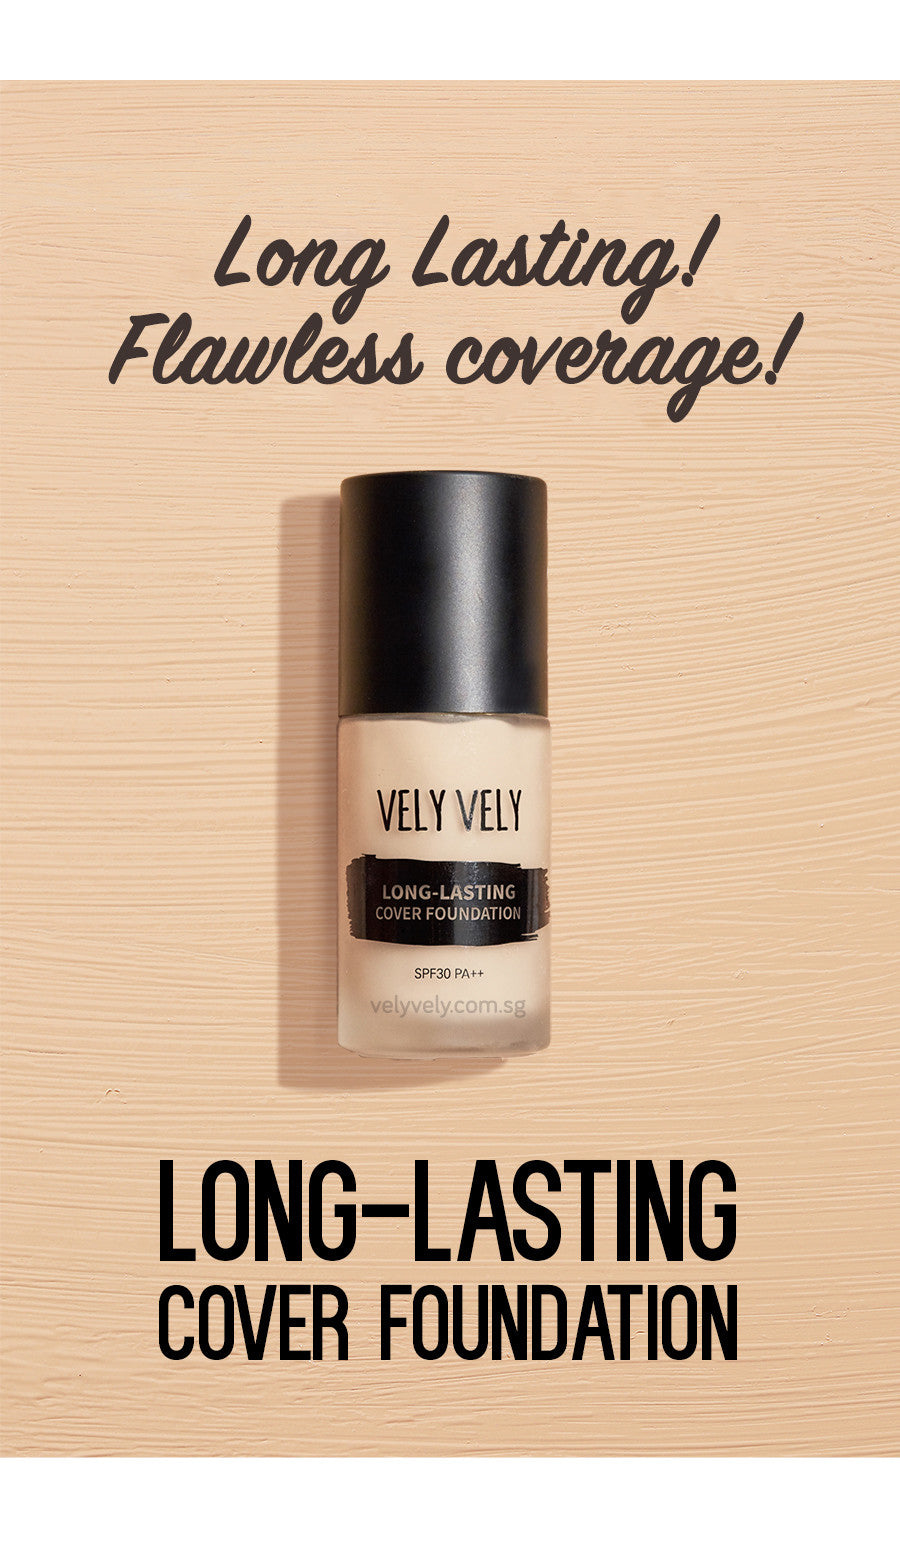 Vely Vely Long-Lasting Cover foundation lasts all day! Suitable for all skin types!